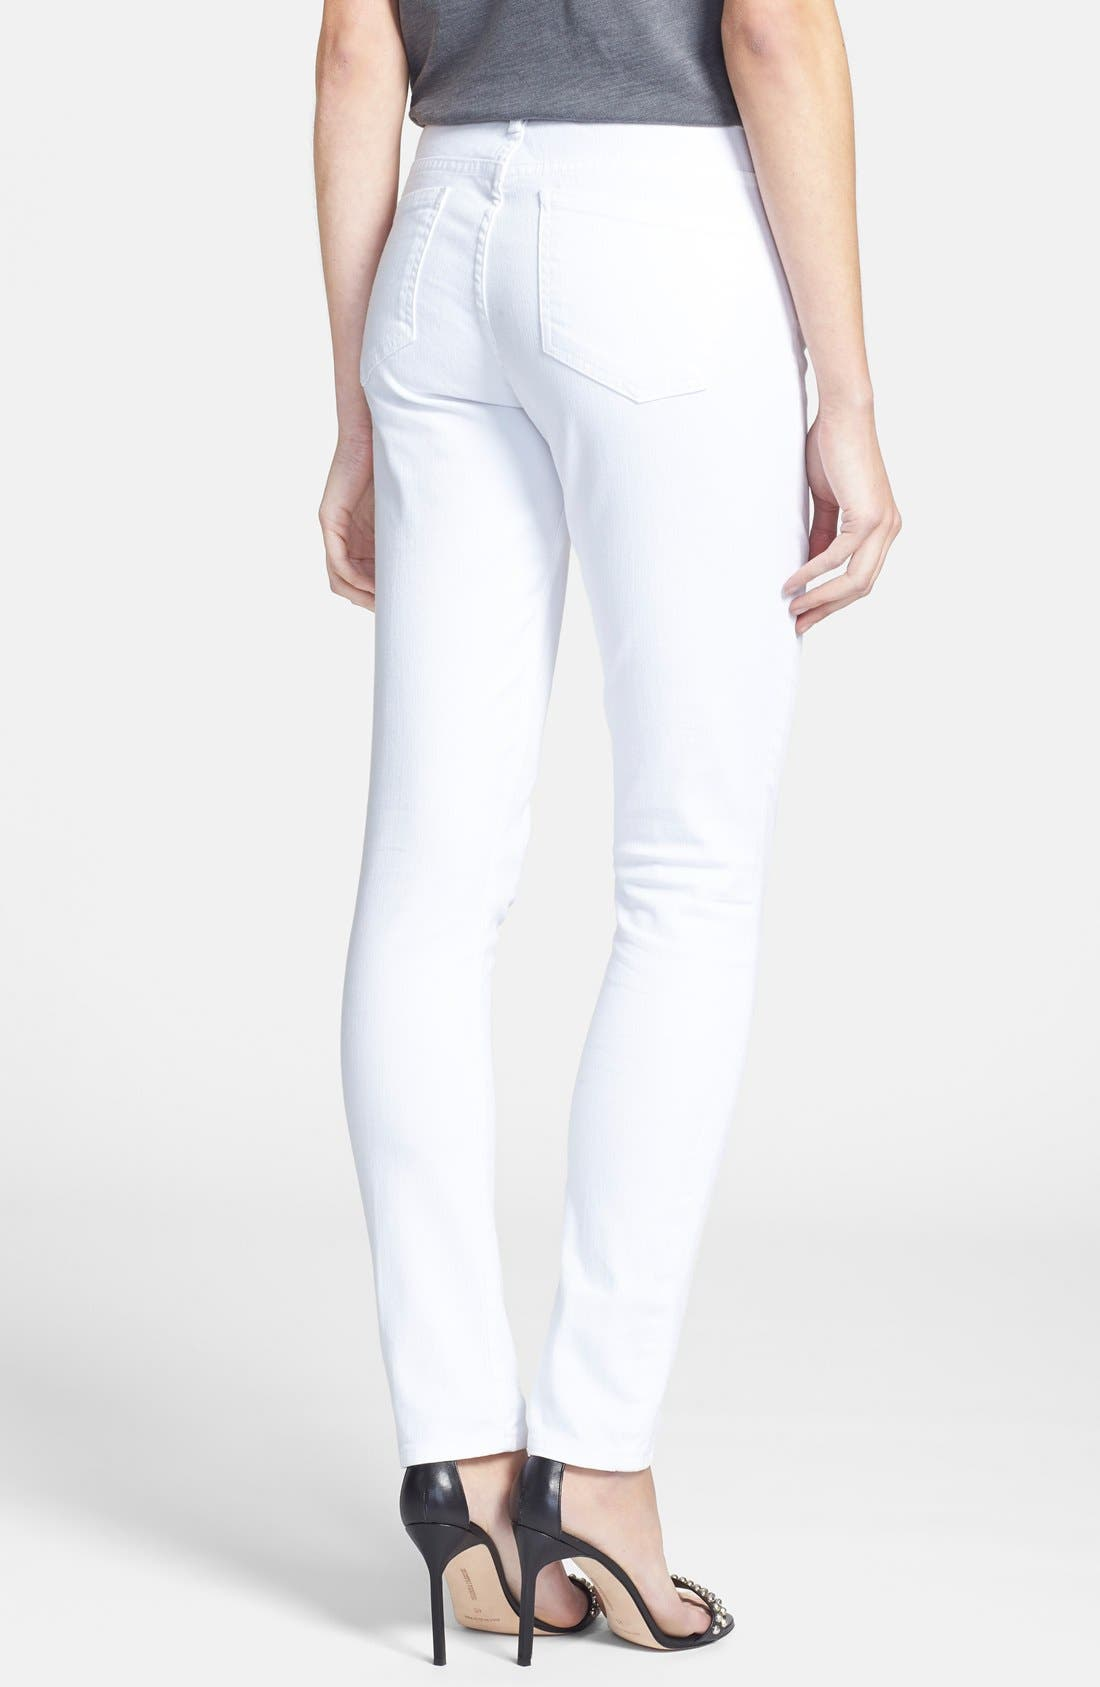 'Arielle' Skinny Jeans,                             Alternate thumbnail 2, color,                             100